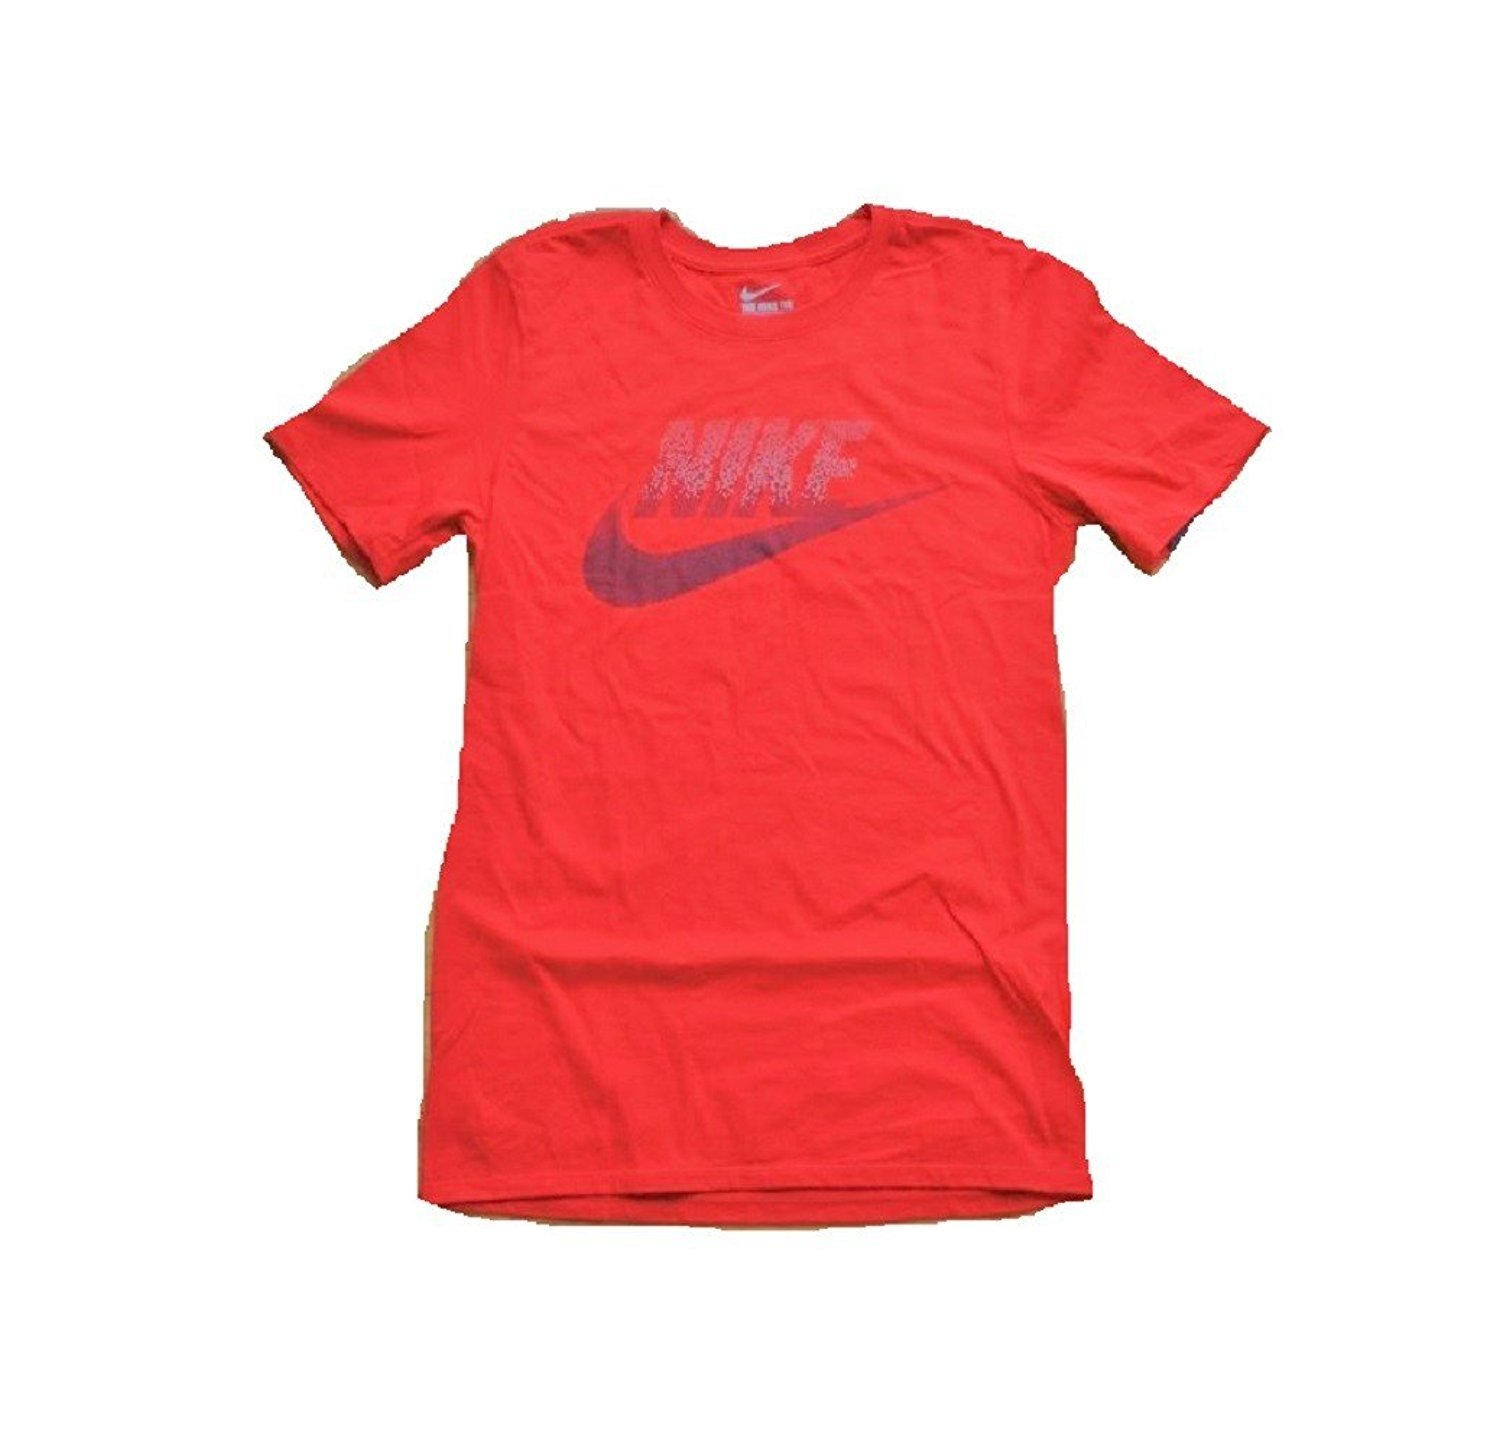 d6eb07840e7 Galleon - Nike Mens Athletic The Nike Tee Crew Neck Short Sleeve T-Shirt  (Red Dots